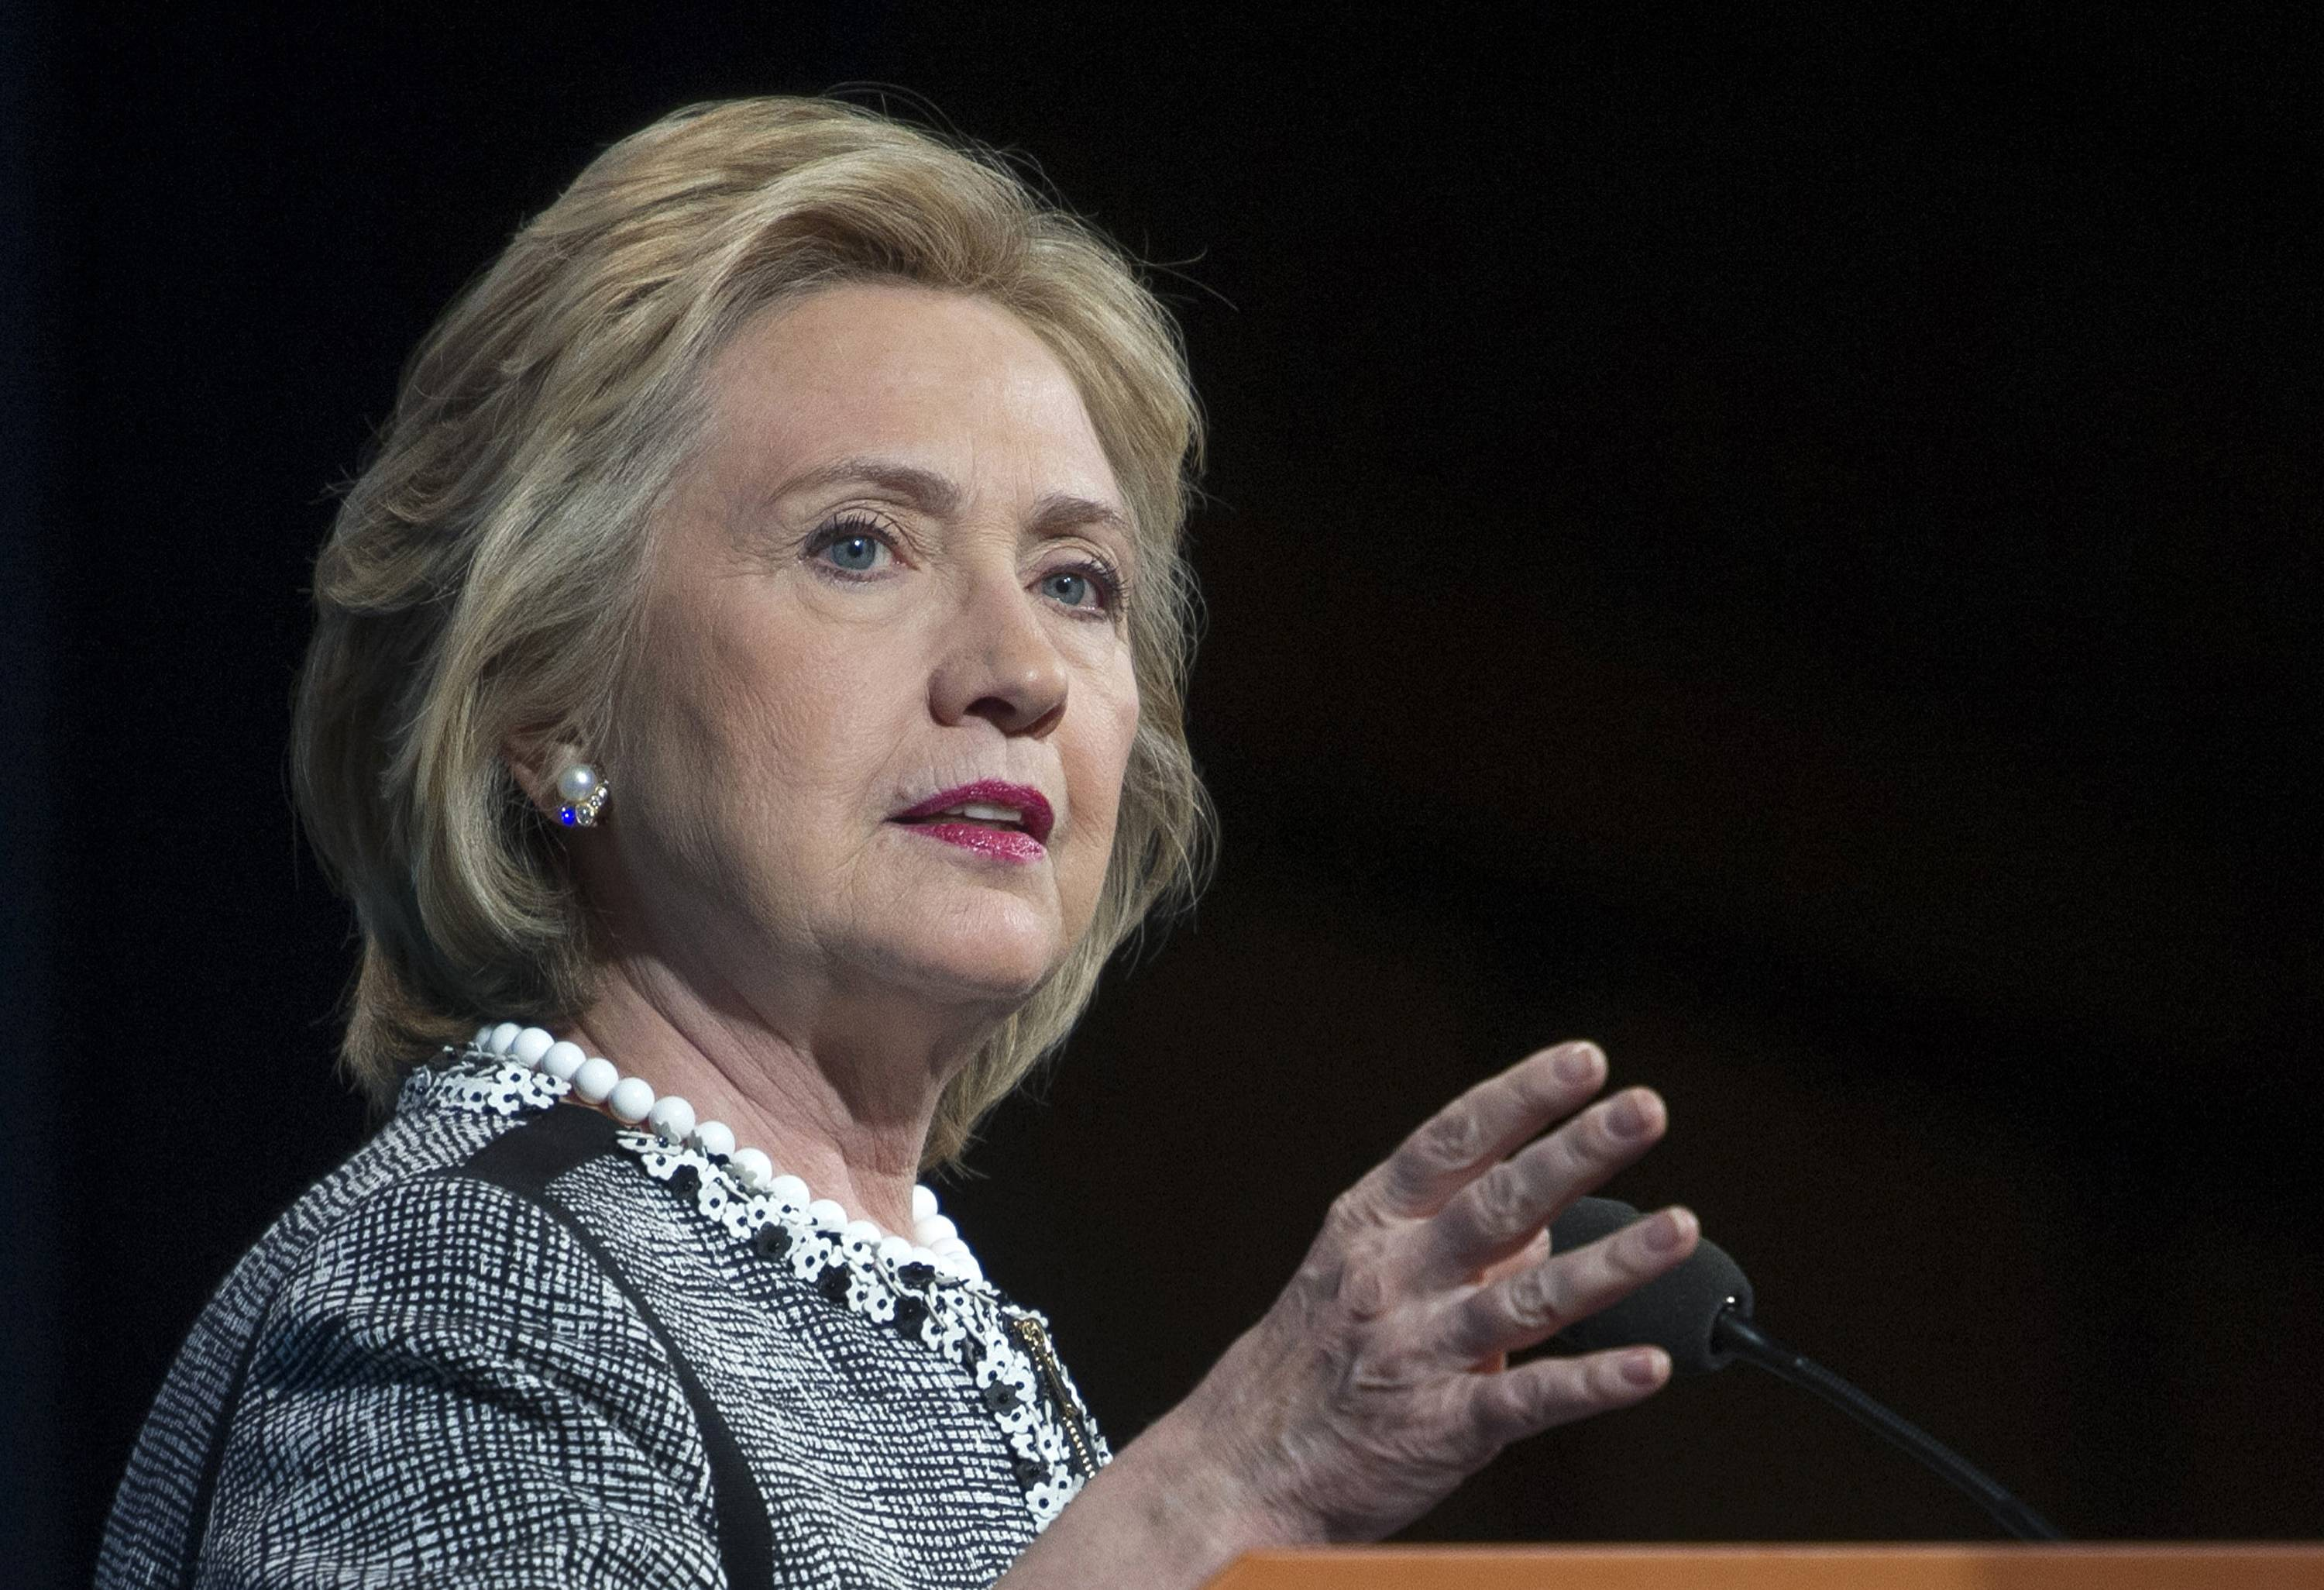 Former Secretary of State Hillary Clinton says she feels emboldened to run for president because of Republican criticism of her handling of the deadly 2012 terrorist attacks in Benghazi, Libya.